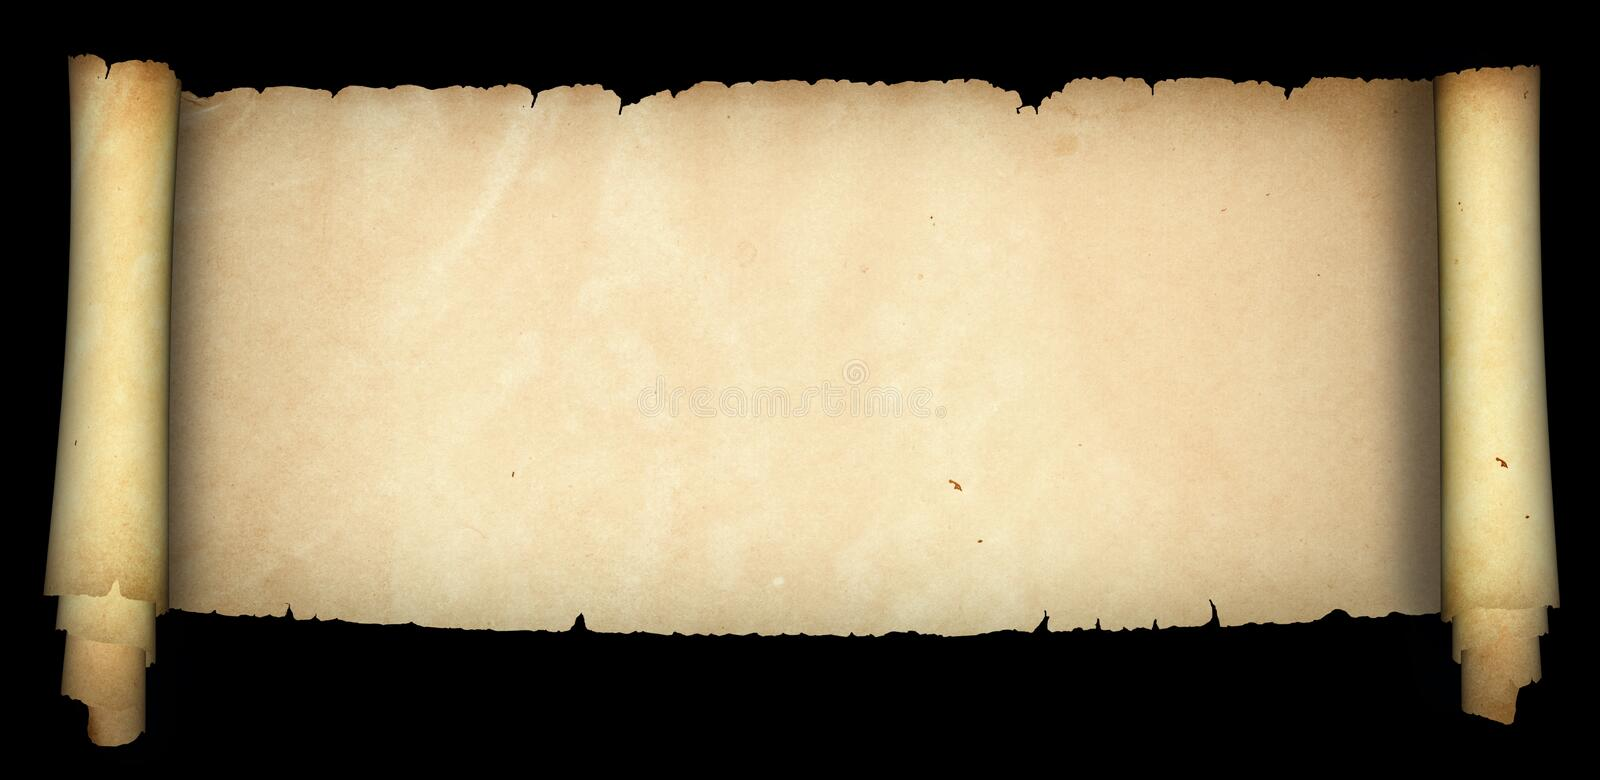 Old medieval parchment. royalty free stock photography